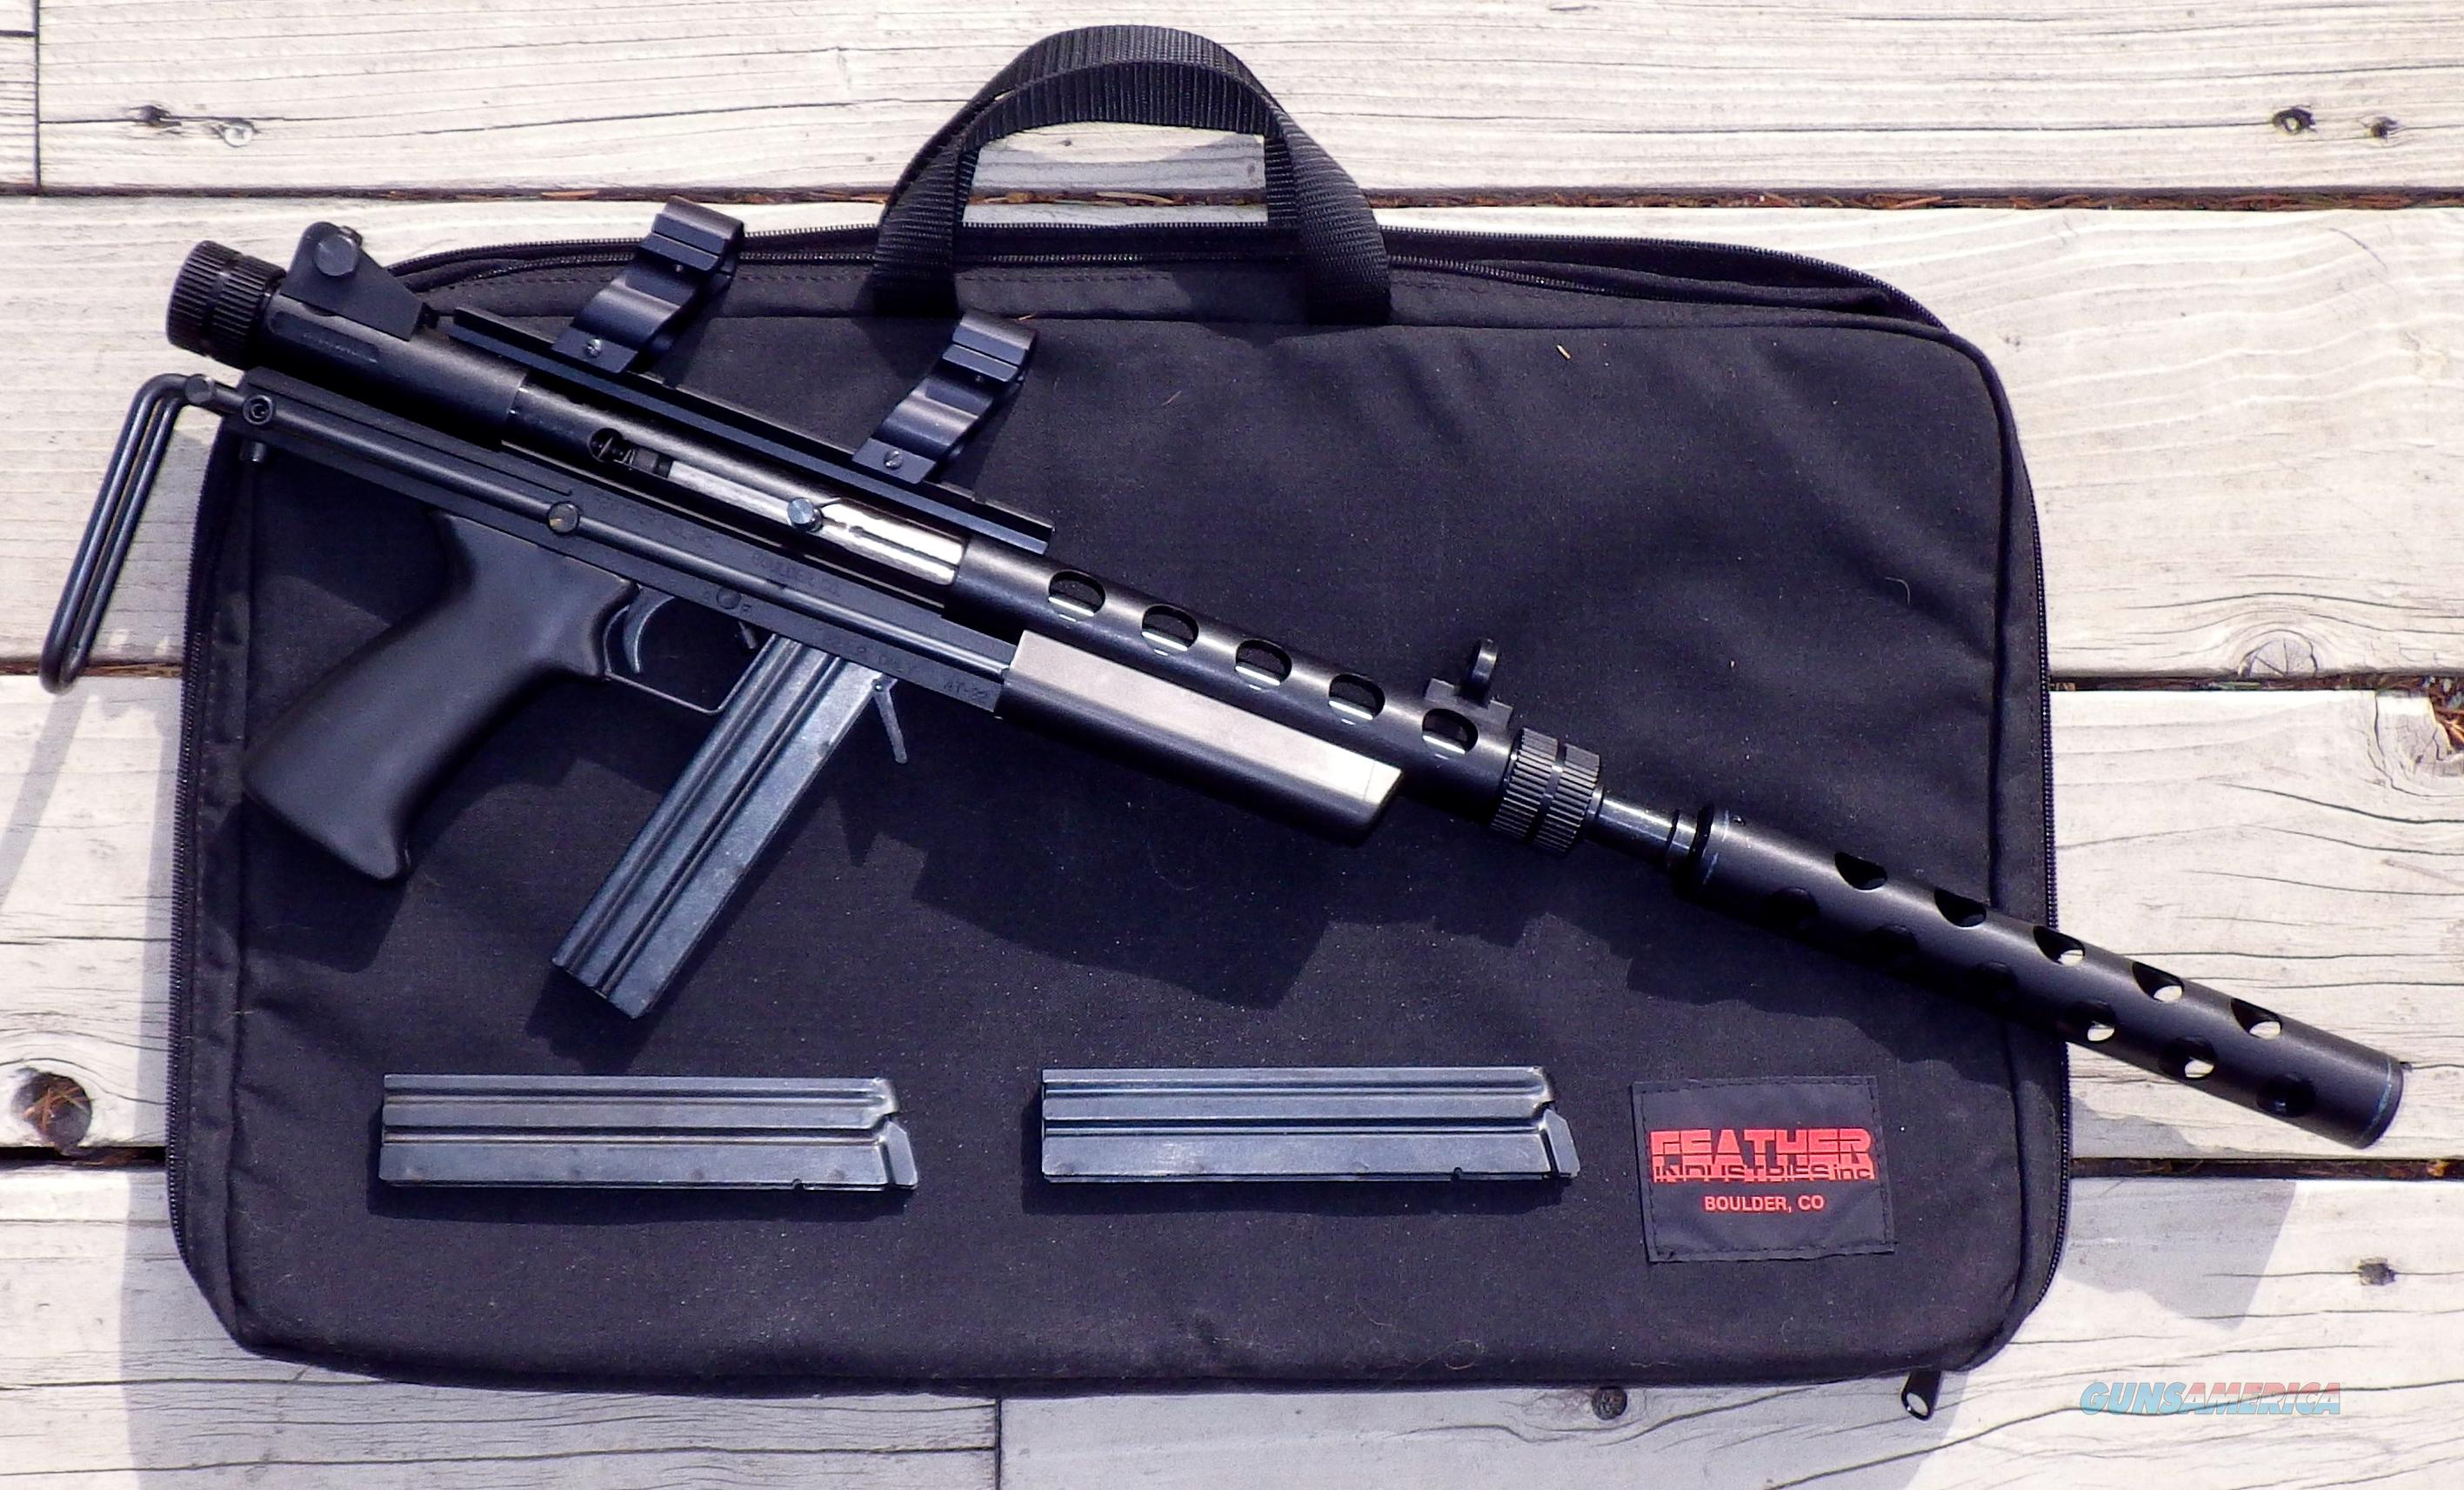 Feather Industries AT-22, telescoping, shroud, mounts, 3 mags, case  Guns > Rifles > Feather Industry Rifles